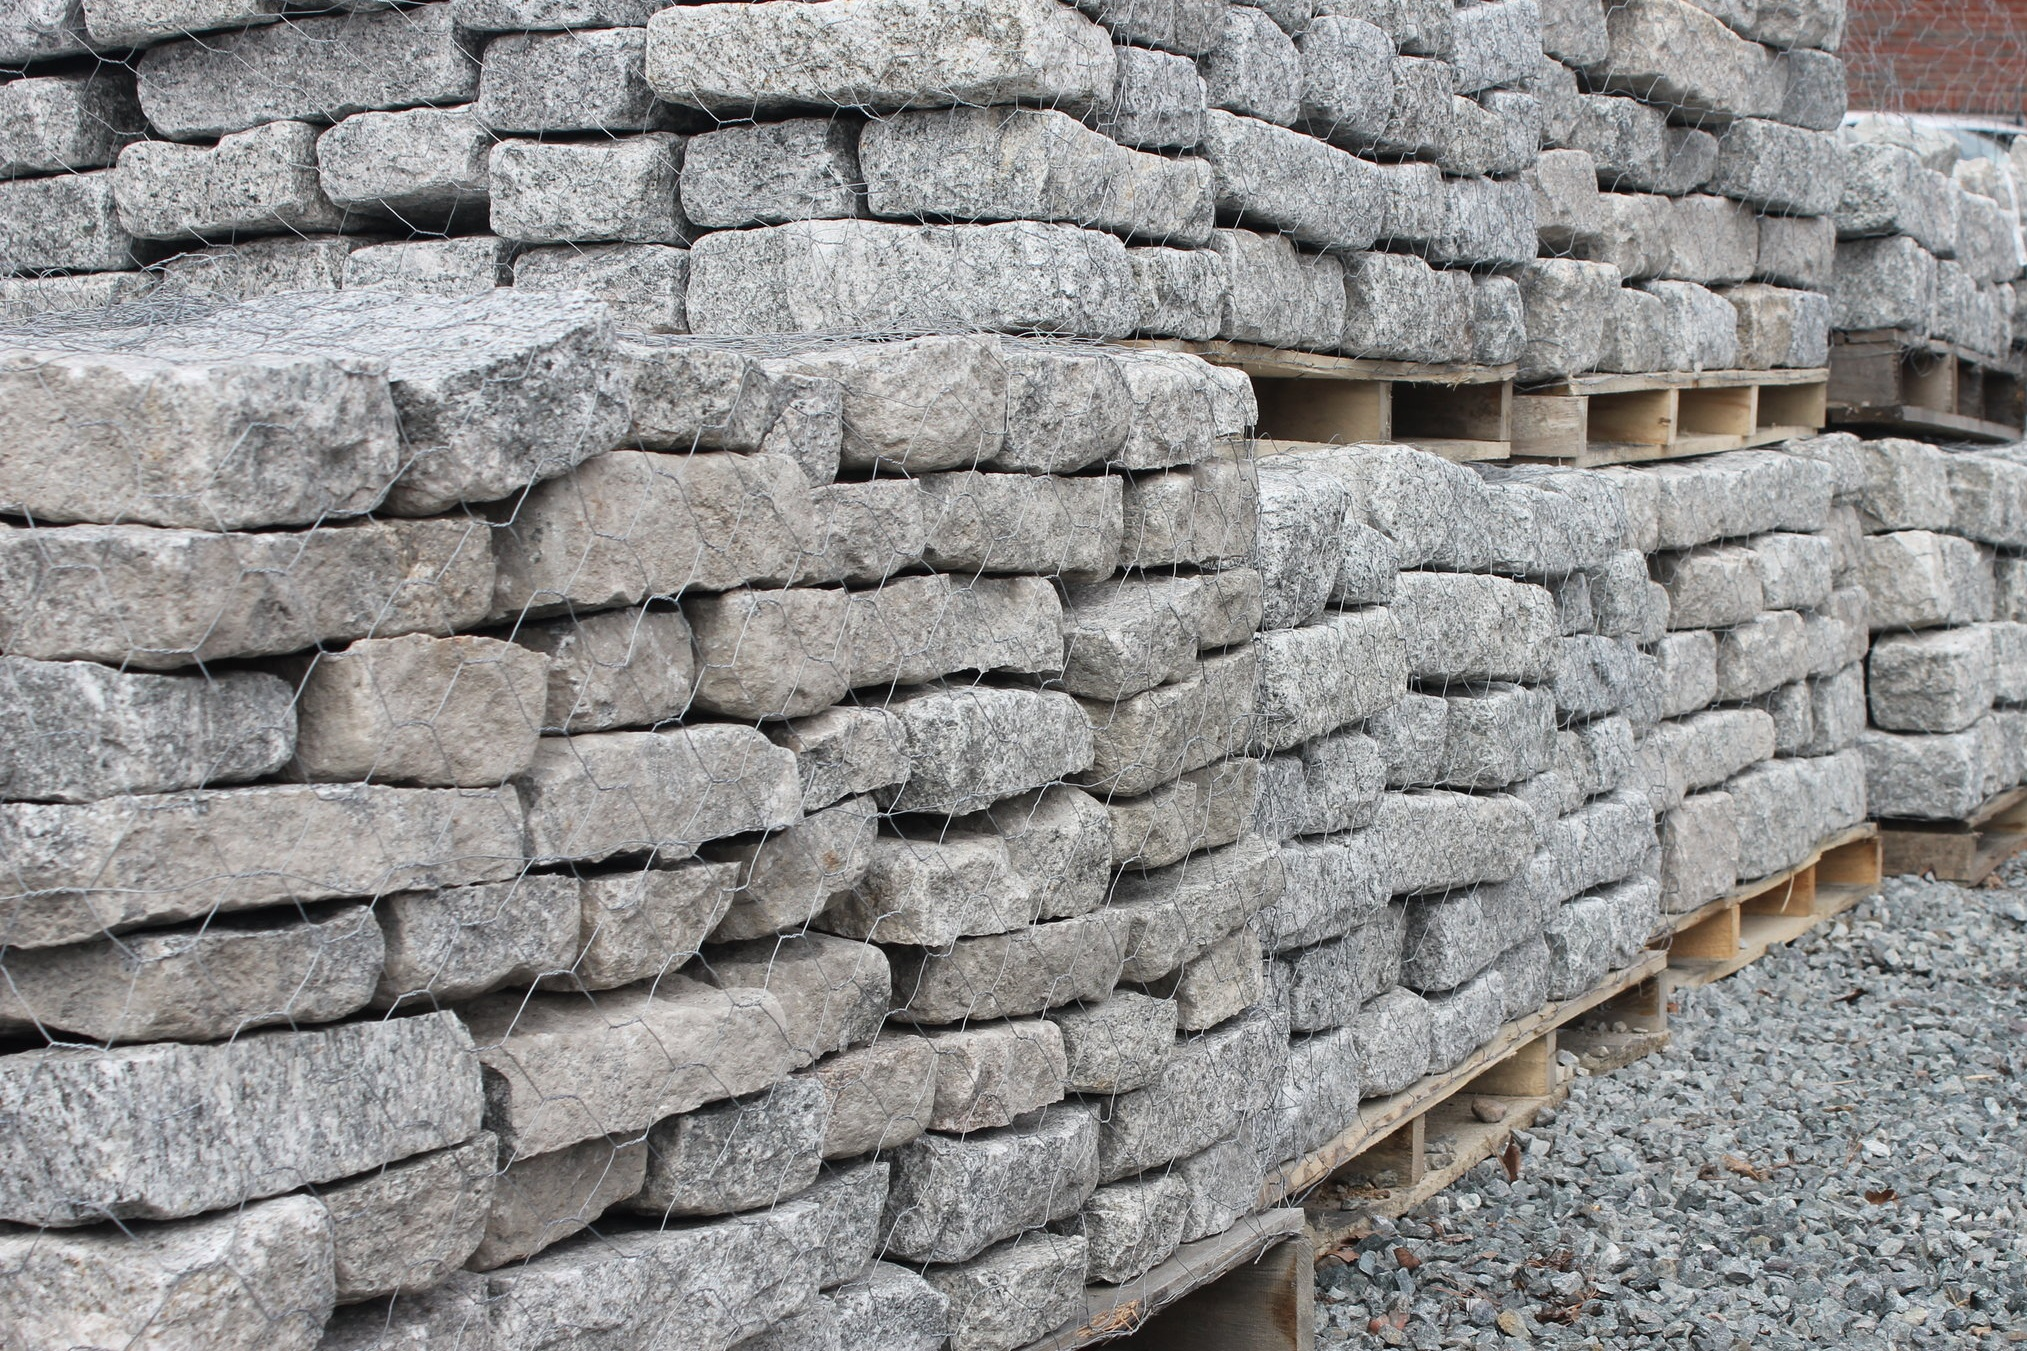 NATURAL STONE & COBBLESTONES   We stock cobblestones in various sizes for purchase by the piece or by the pallet. We also carry a selection of palletized natural stone and bluestone. Selection varies by location — please call for more details.